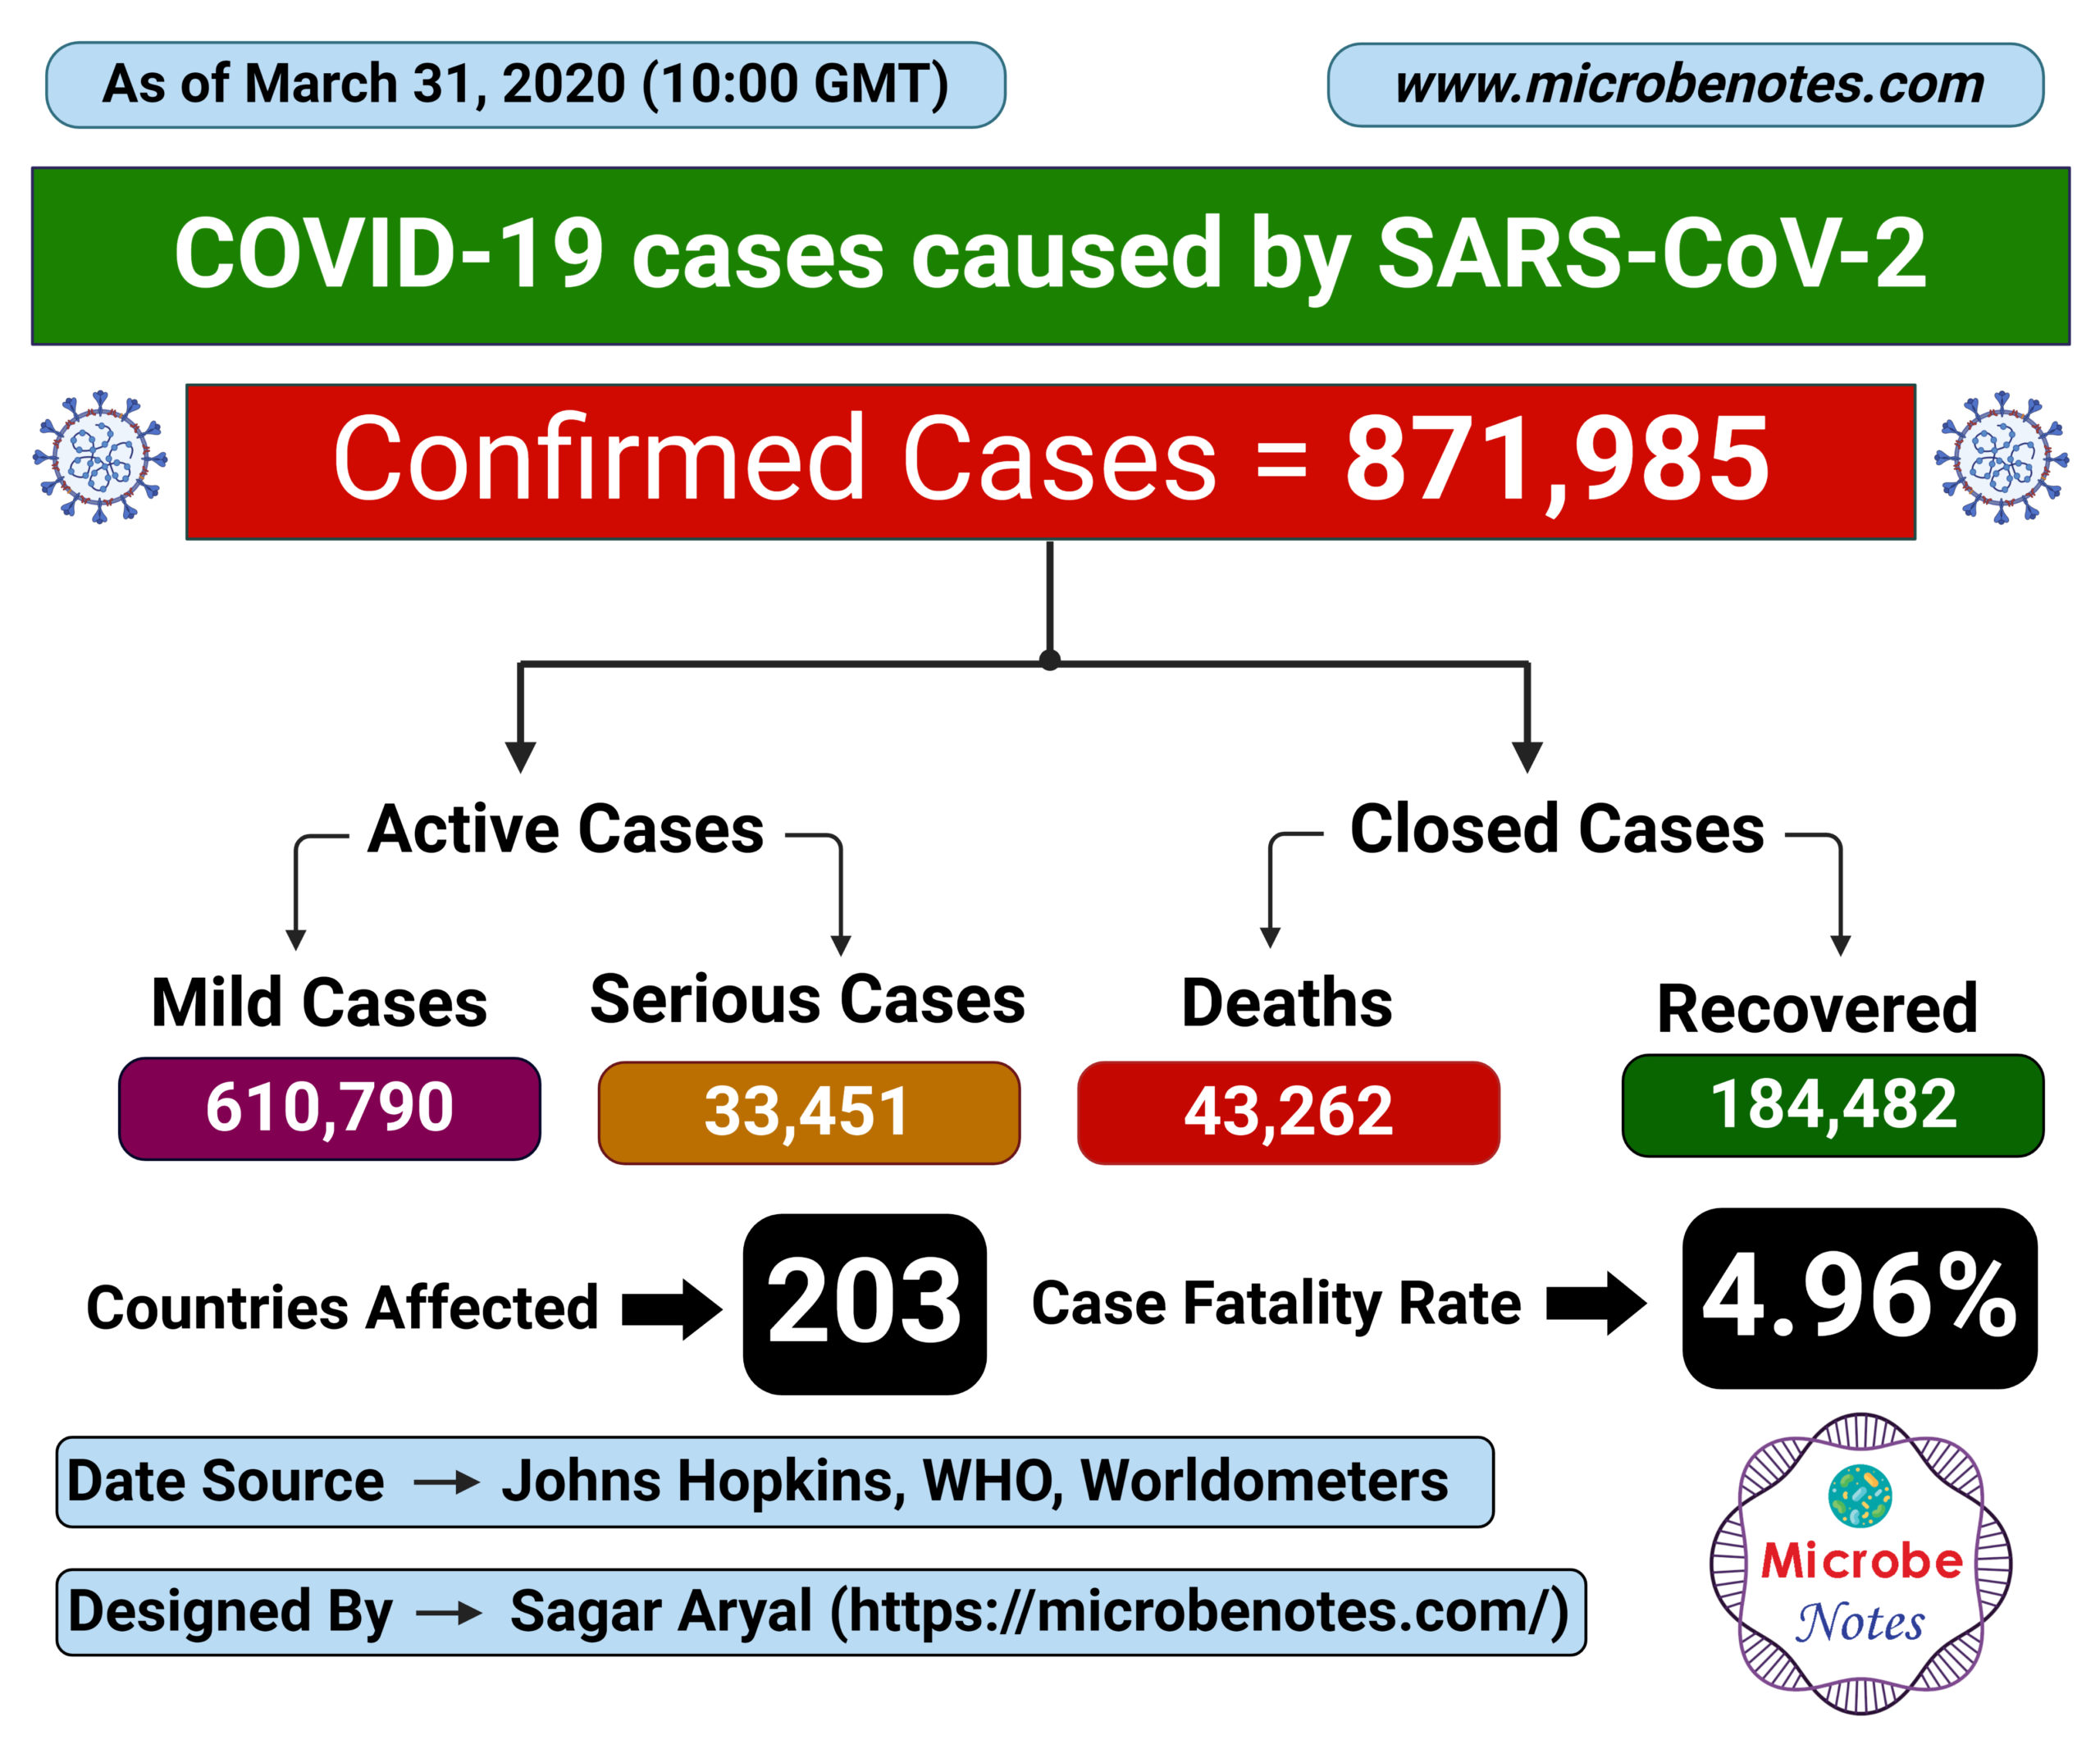 Epidemiology of COVID-19 caused by SARS-CoV-2 as of March 31, 2020